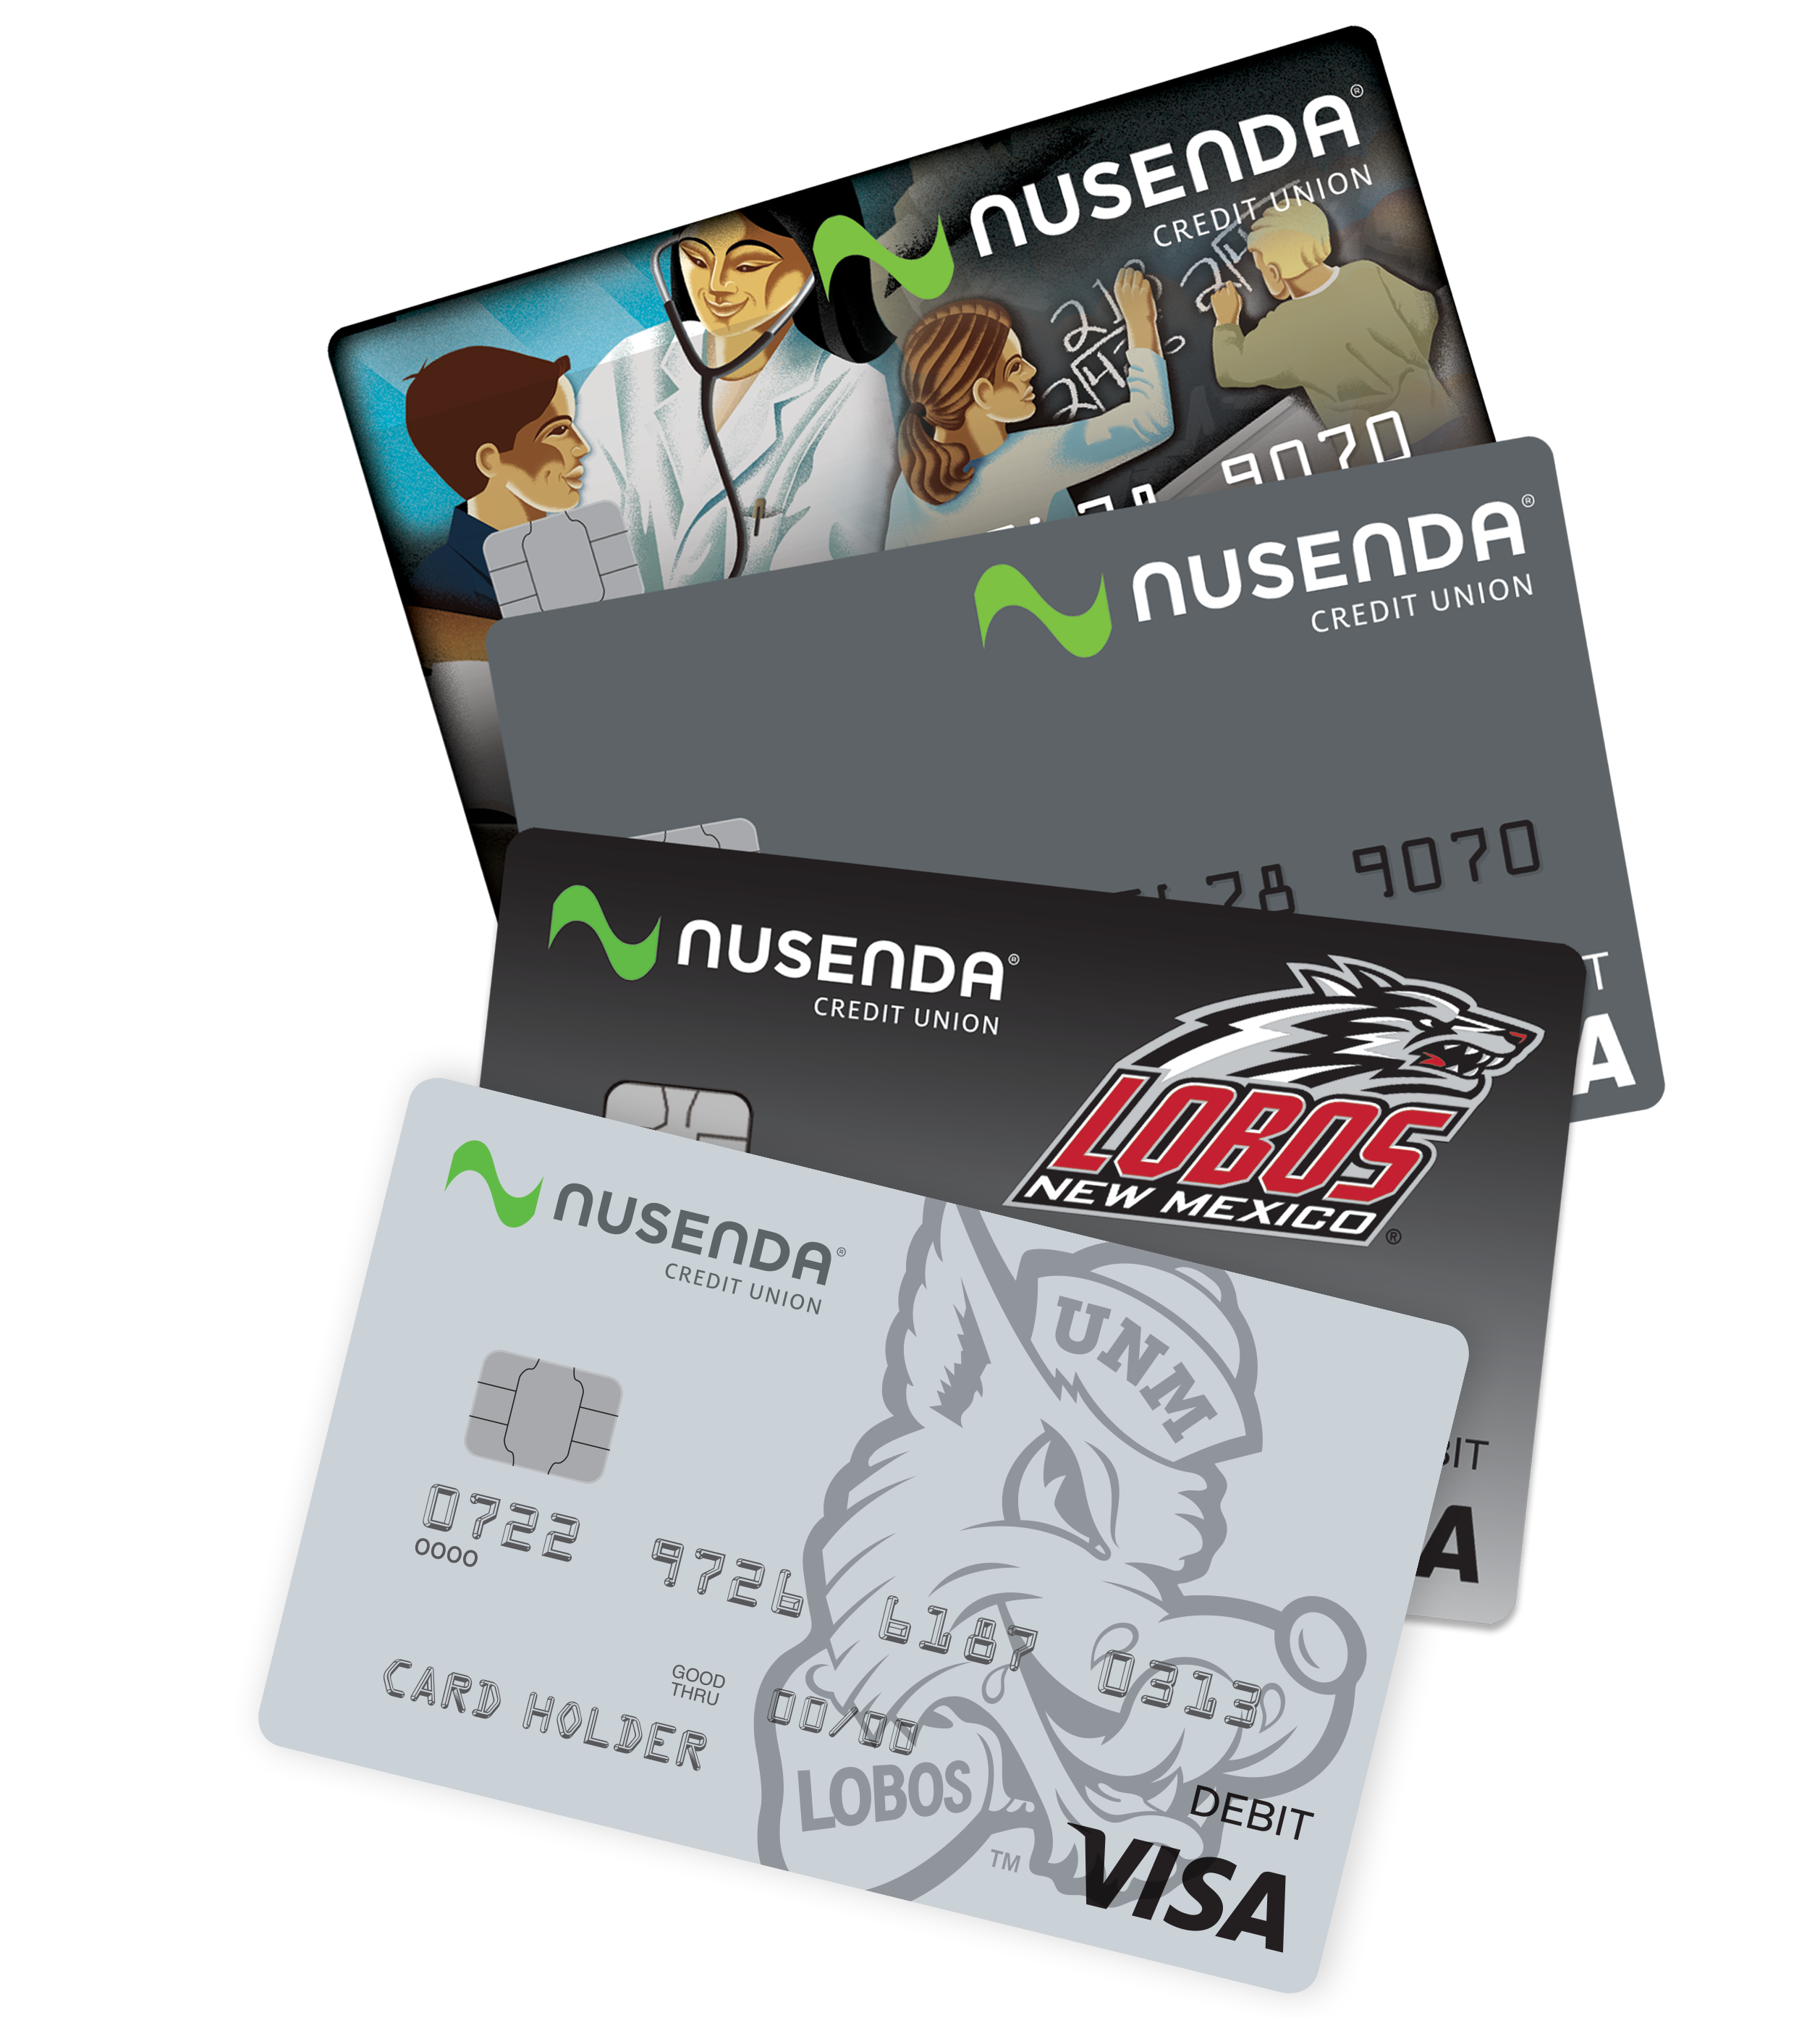 louie lobo added to the lineup of debit cards - Custom Visa Debit Card